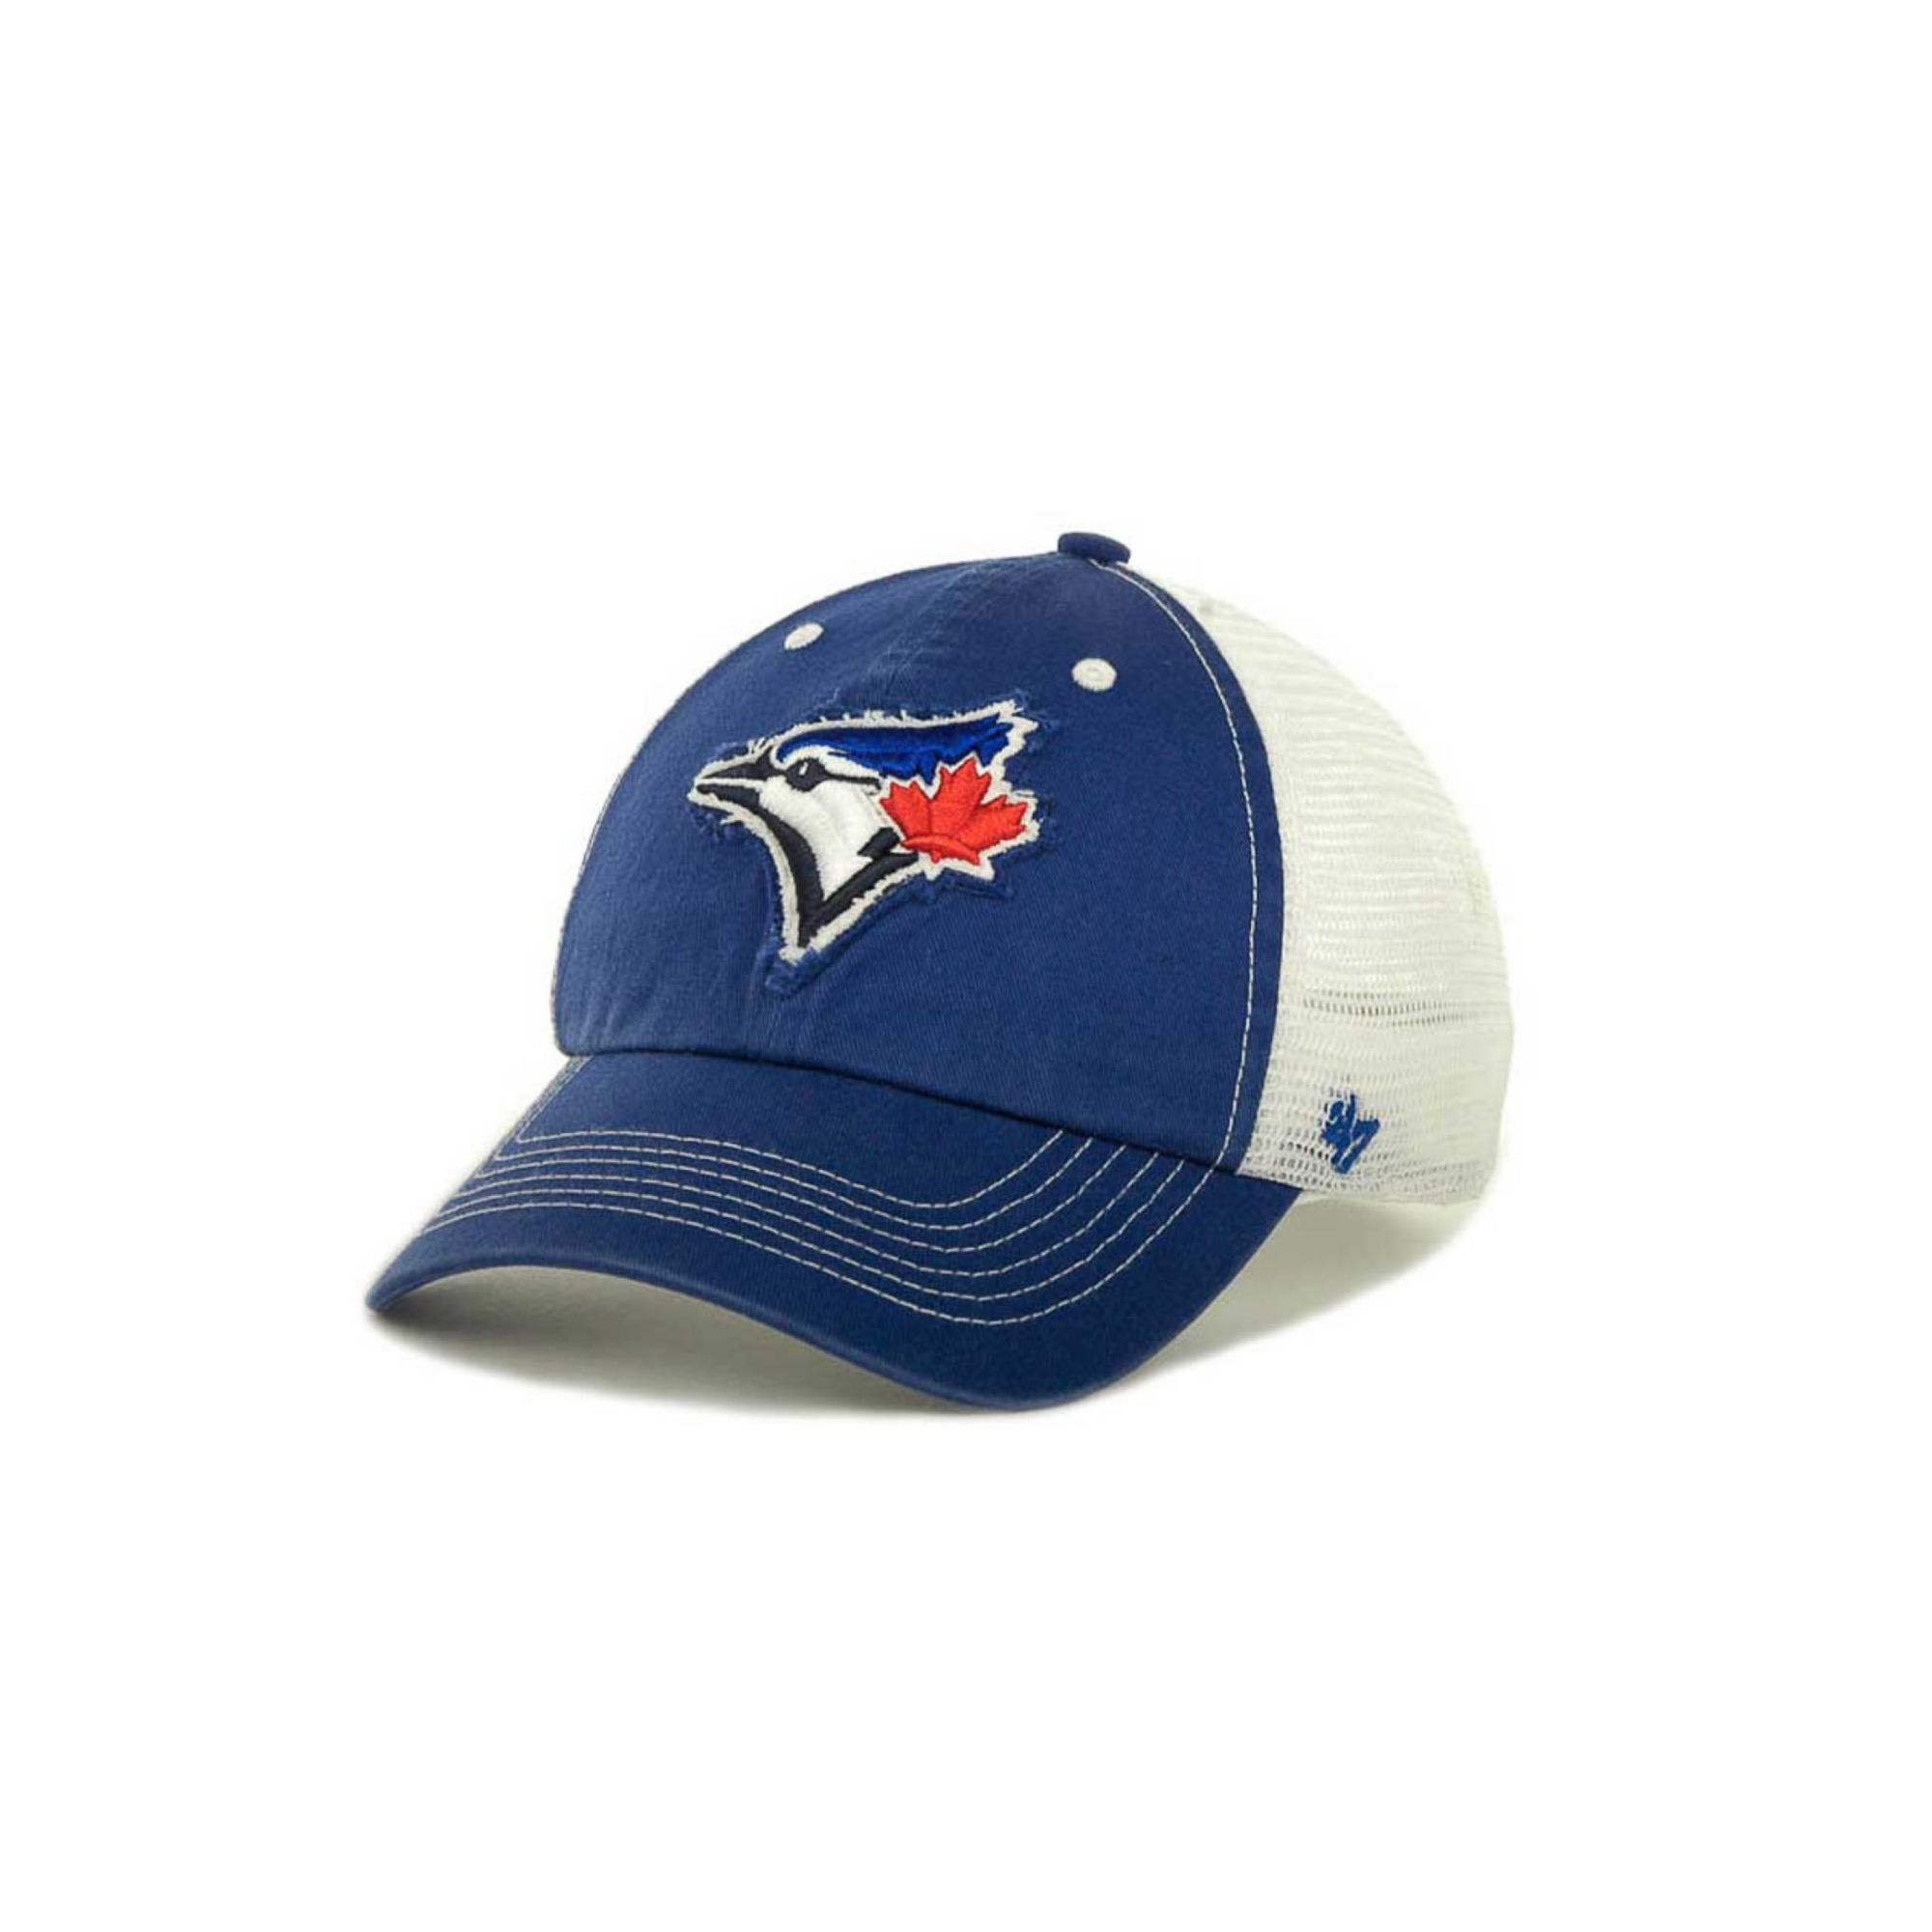 online retailer 10746 9c5c9 real toronto blue jays hat 47 brand 2014 dc2bb fe5f5